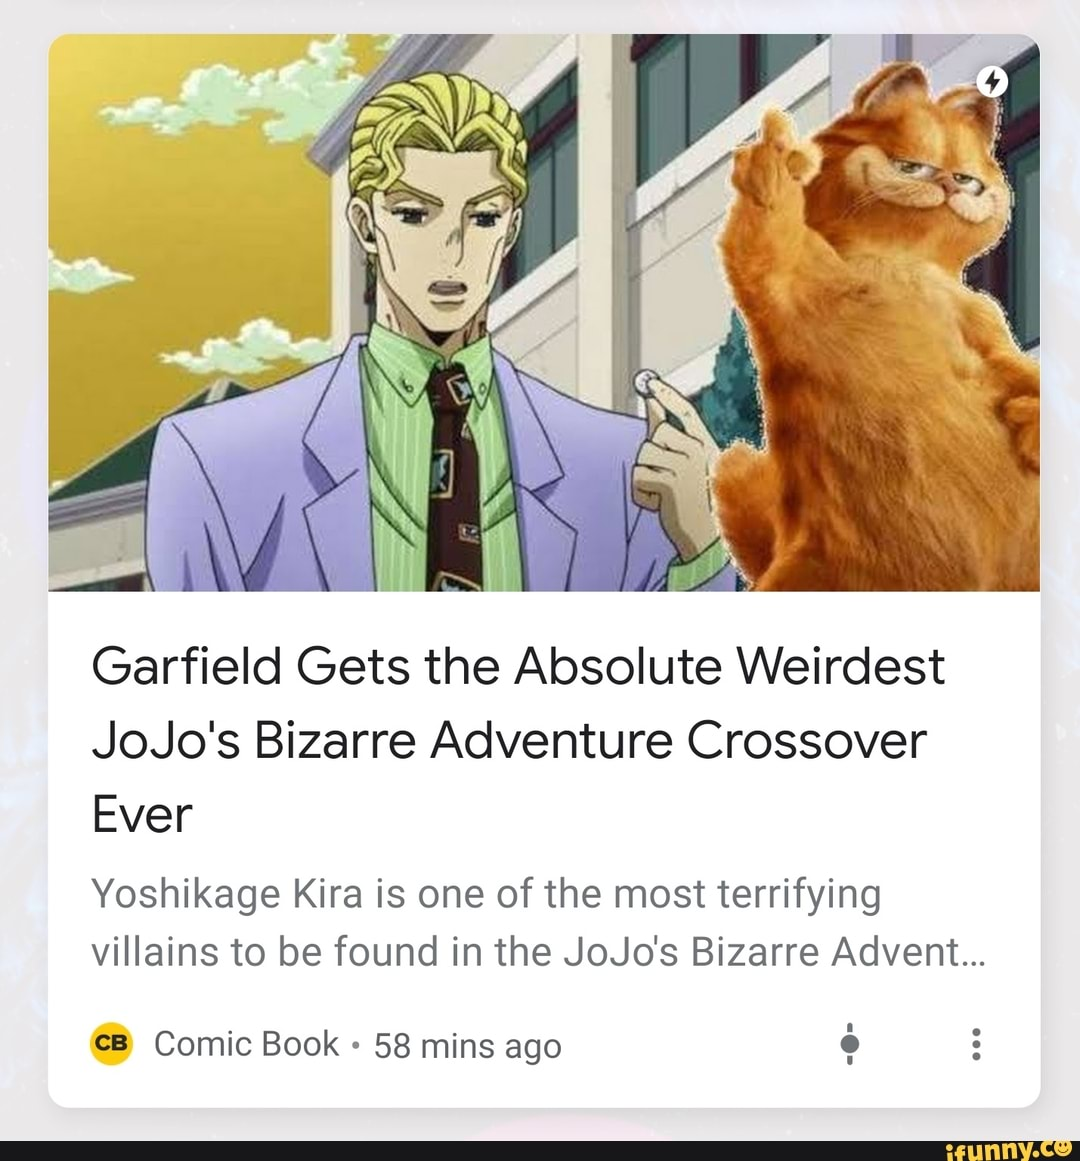 Garfield Gets The Absolute Weirdest Jojo S Bizarre Adventure Crossover Ever Yoshikage Kira Is One Of The Most Terrifying Villains To Be Found In The Jojo S Bizarre Advent 68 Comic Book 58